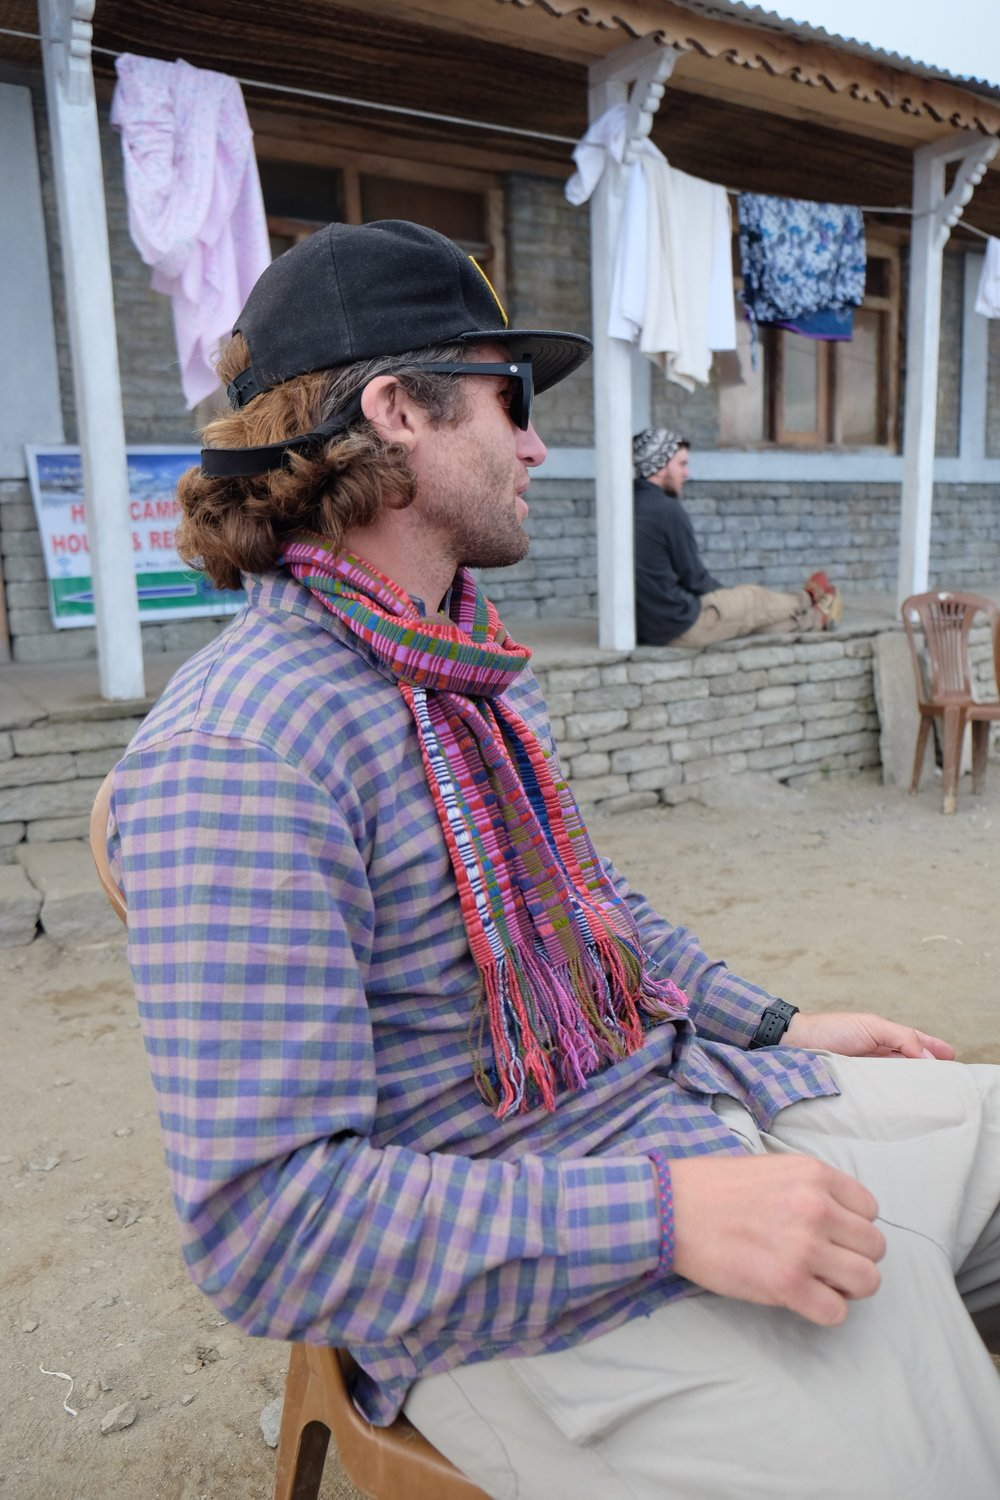 Trail fashion at High Camp (11,745ft): Shirt from Nepal and scarf from Bhutan